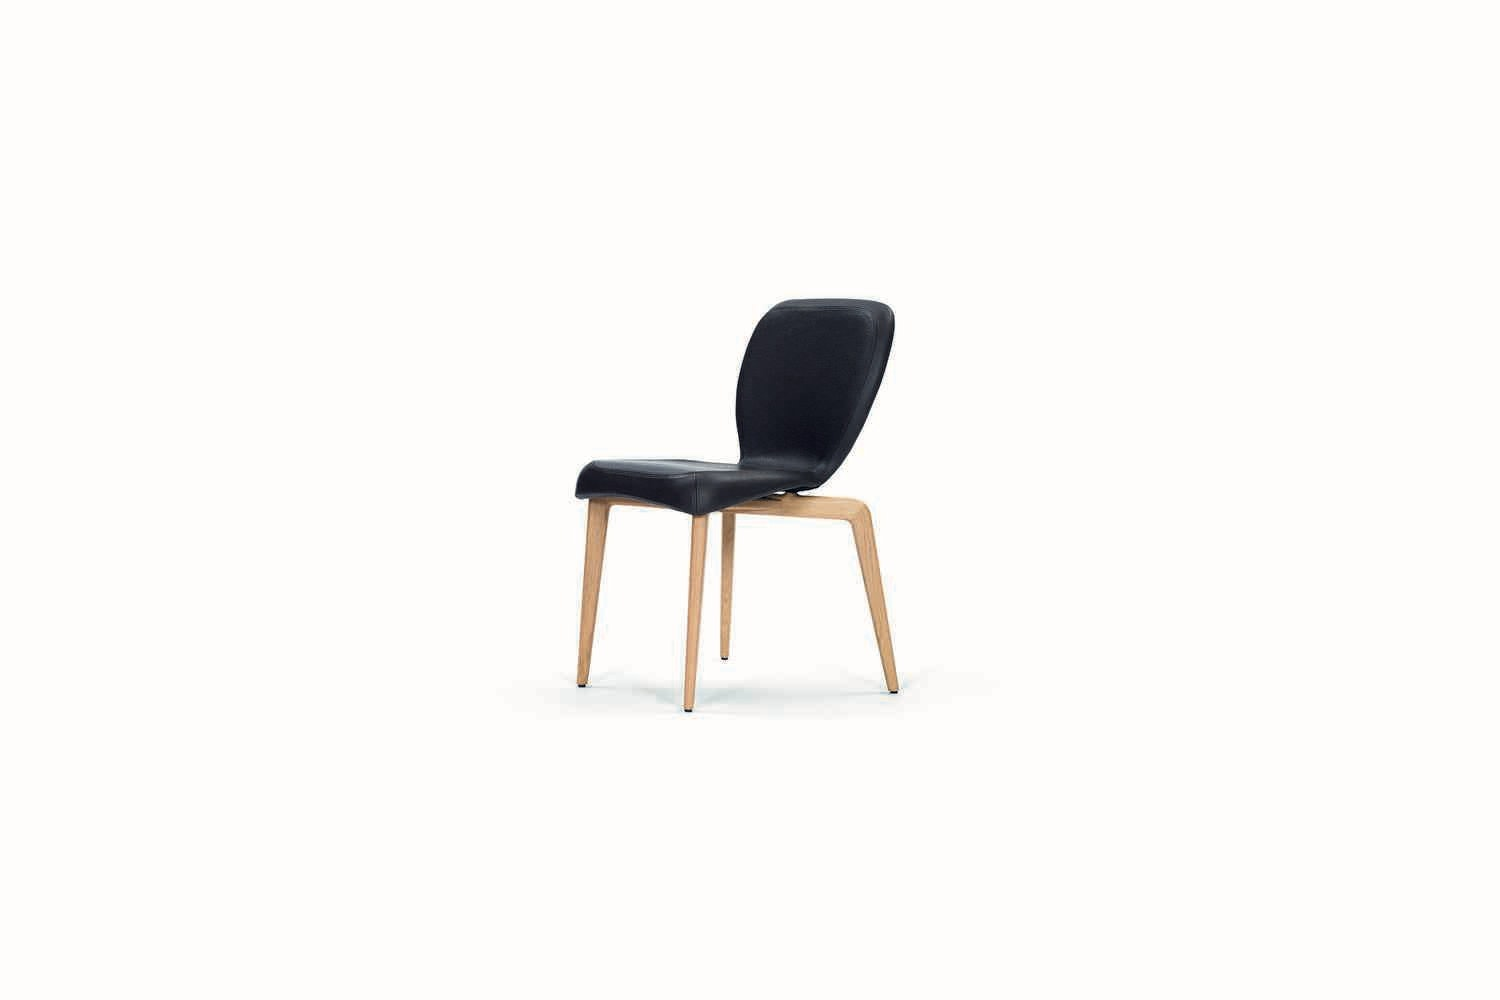 Munich Chair by Sauerbruch for ClassiCon